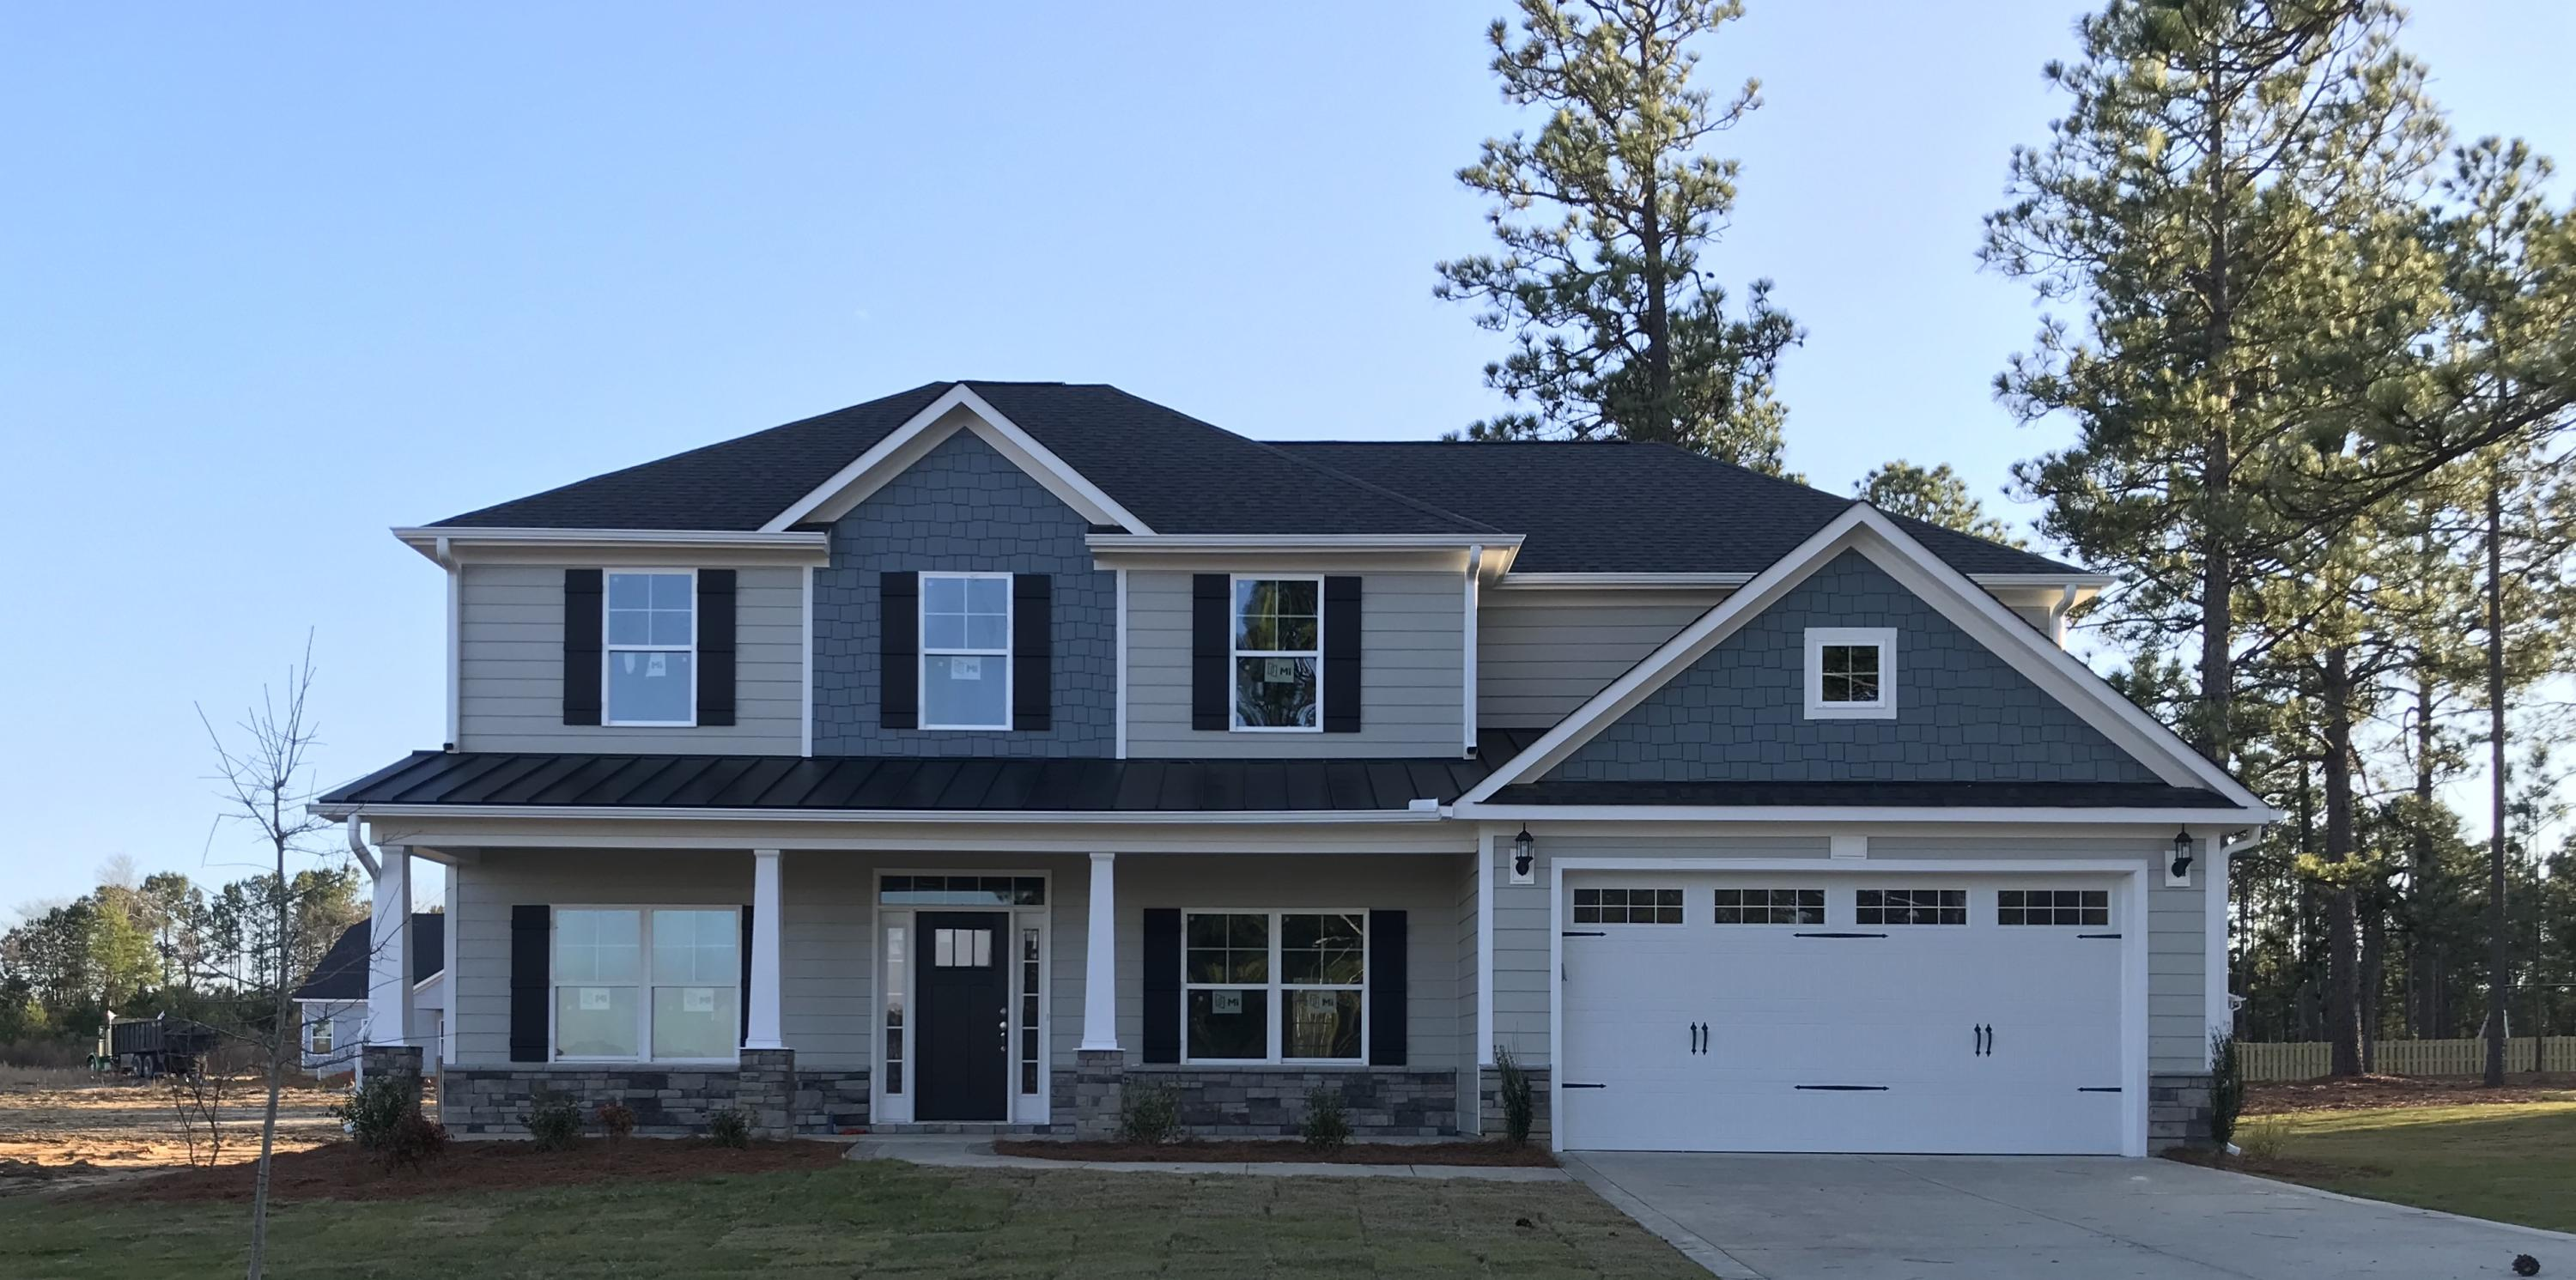 One of Whispering Pines 4 Bedroom Homes for Sale at 619  Planters Row